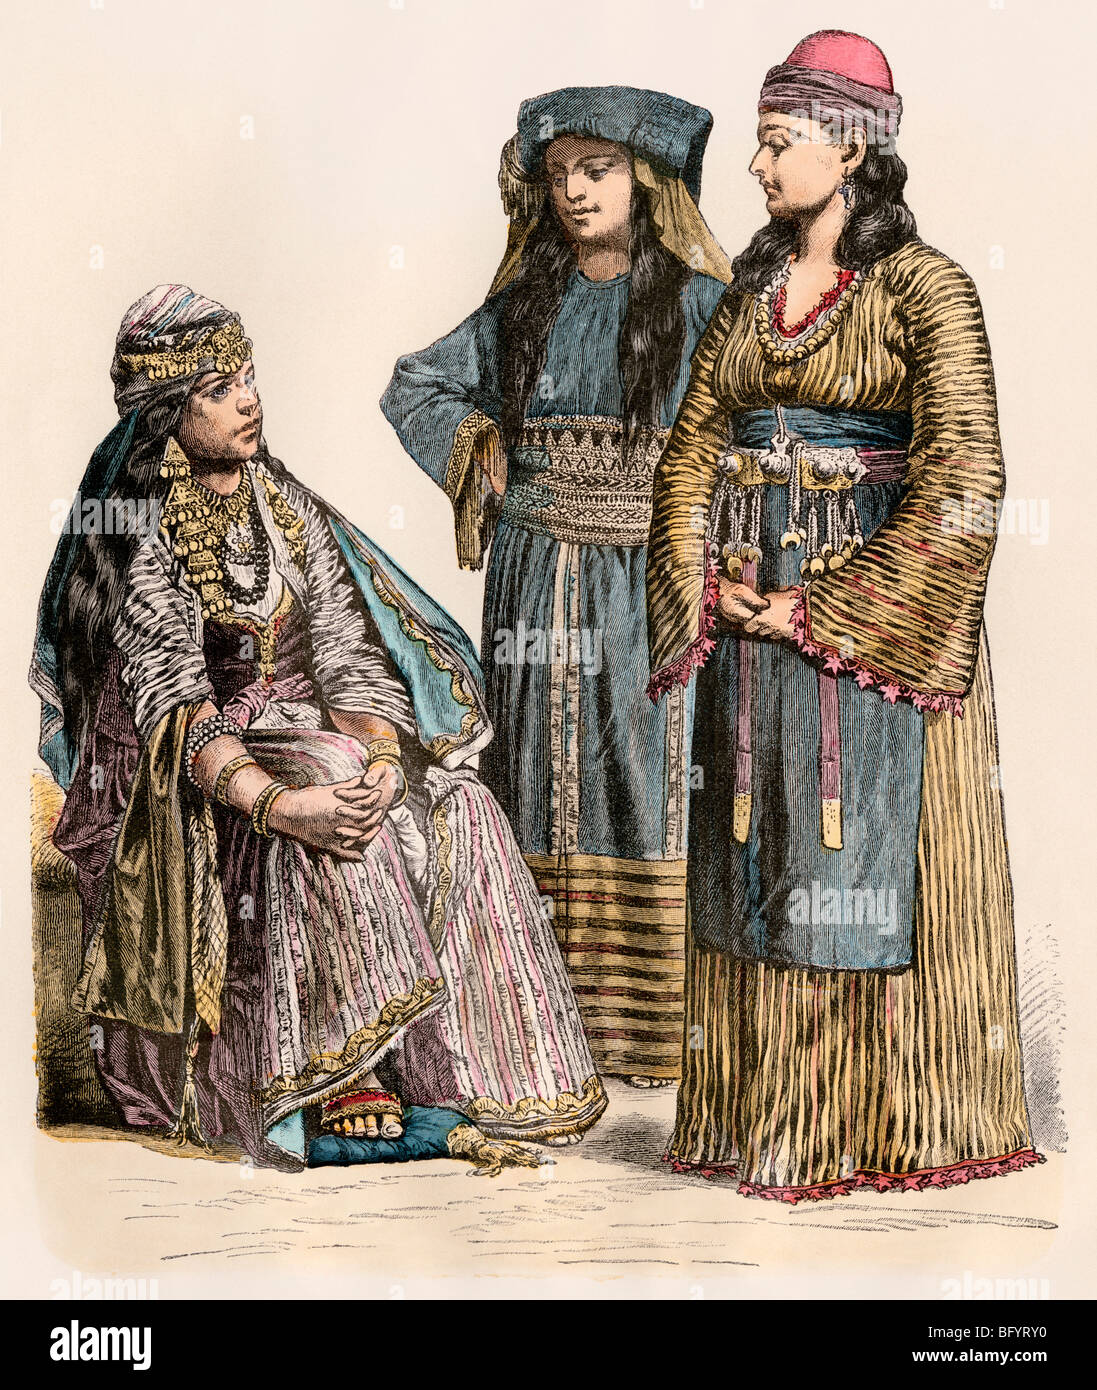 Women of Syria, with a fellah (peasant) woman at right. Hand-colored print - Stock Image